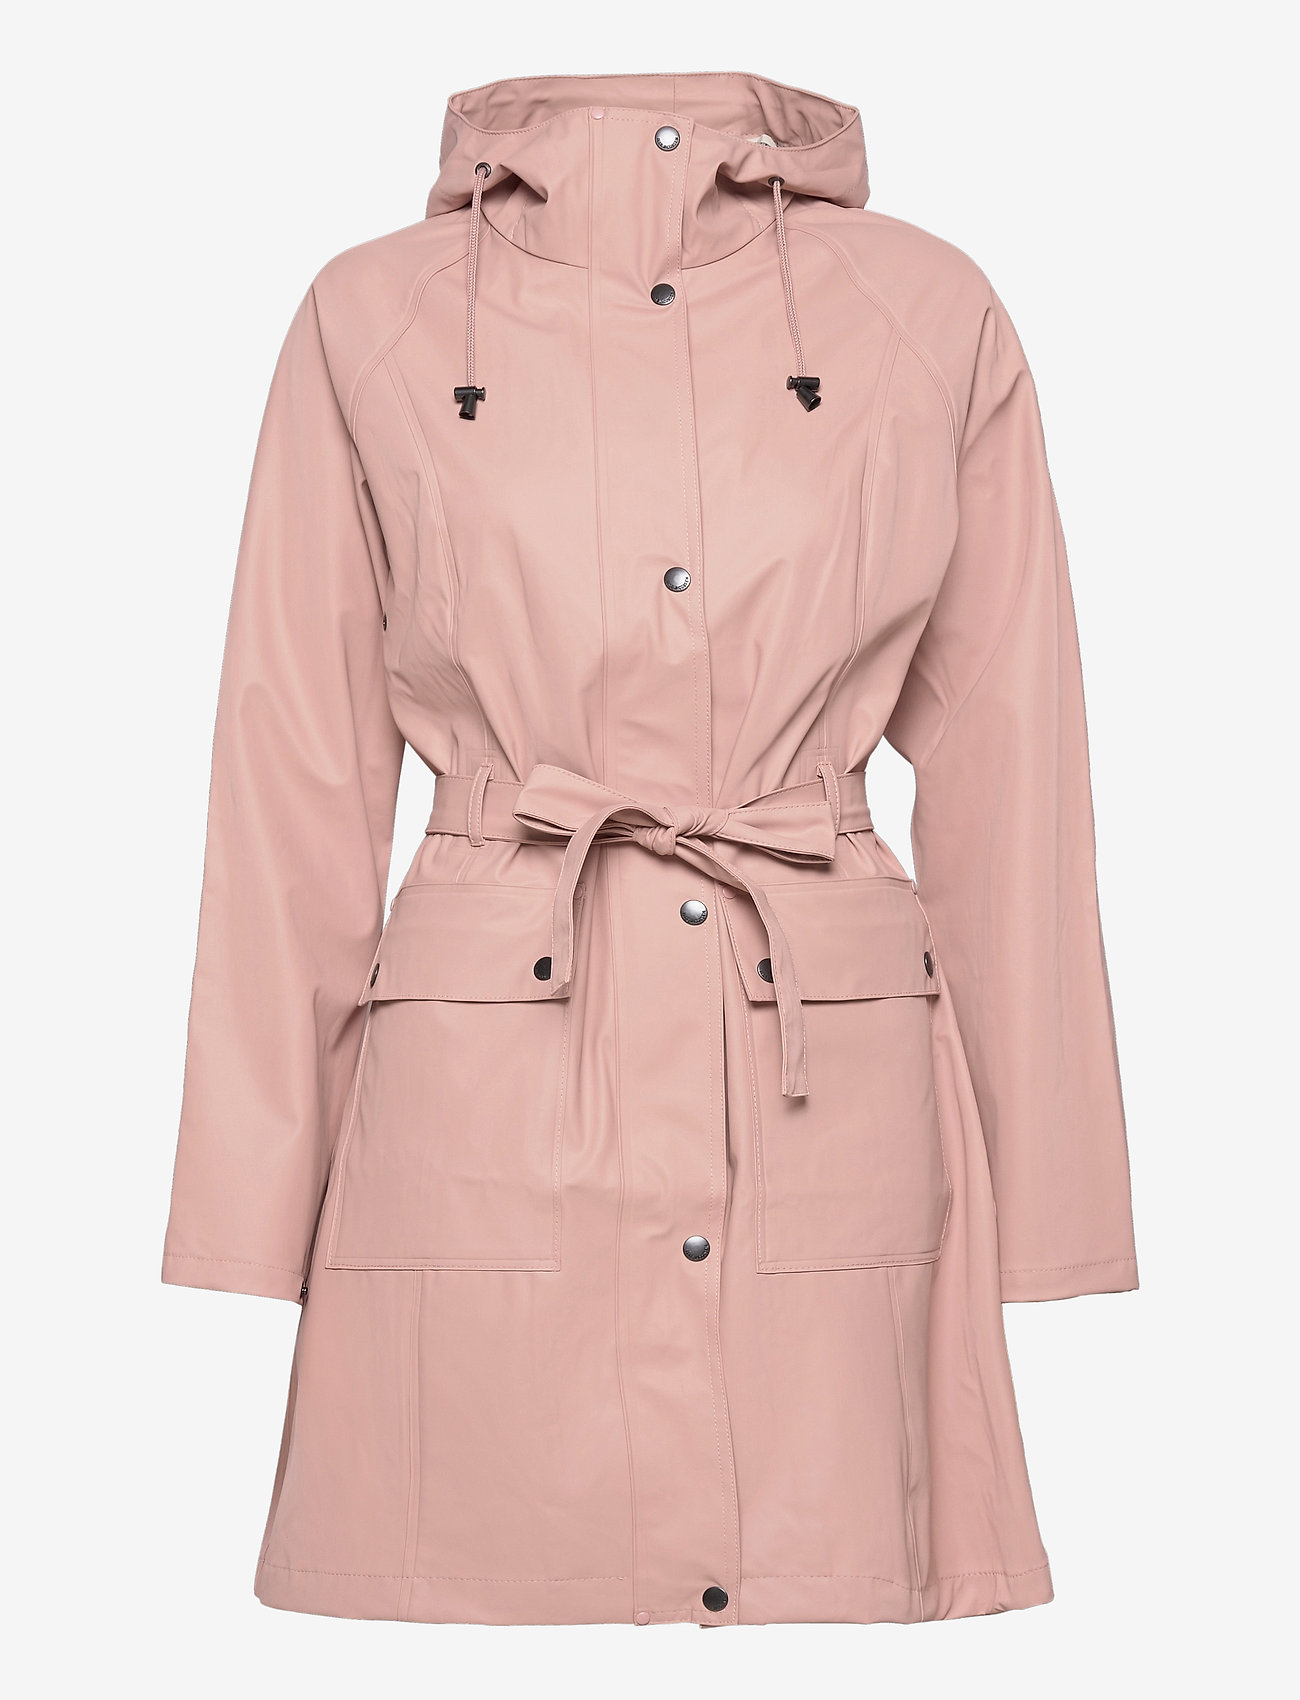 Ilse Jacobsen - RAINCOAT - regnjakker - adobe rose - 0